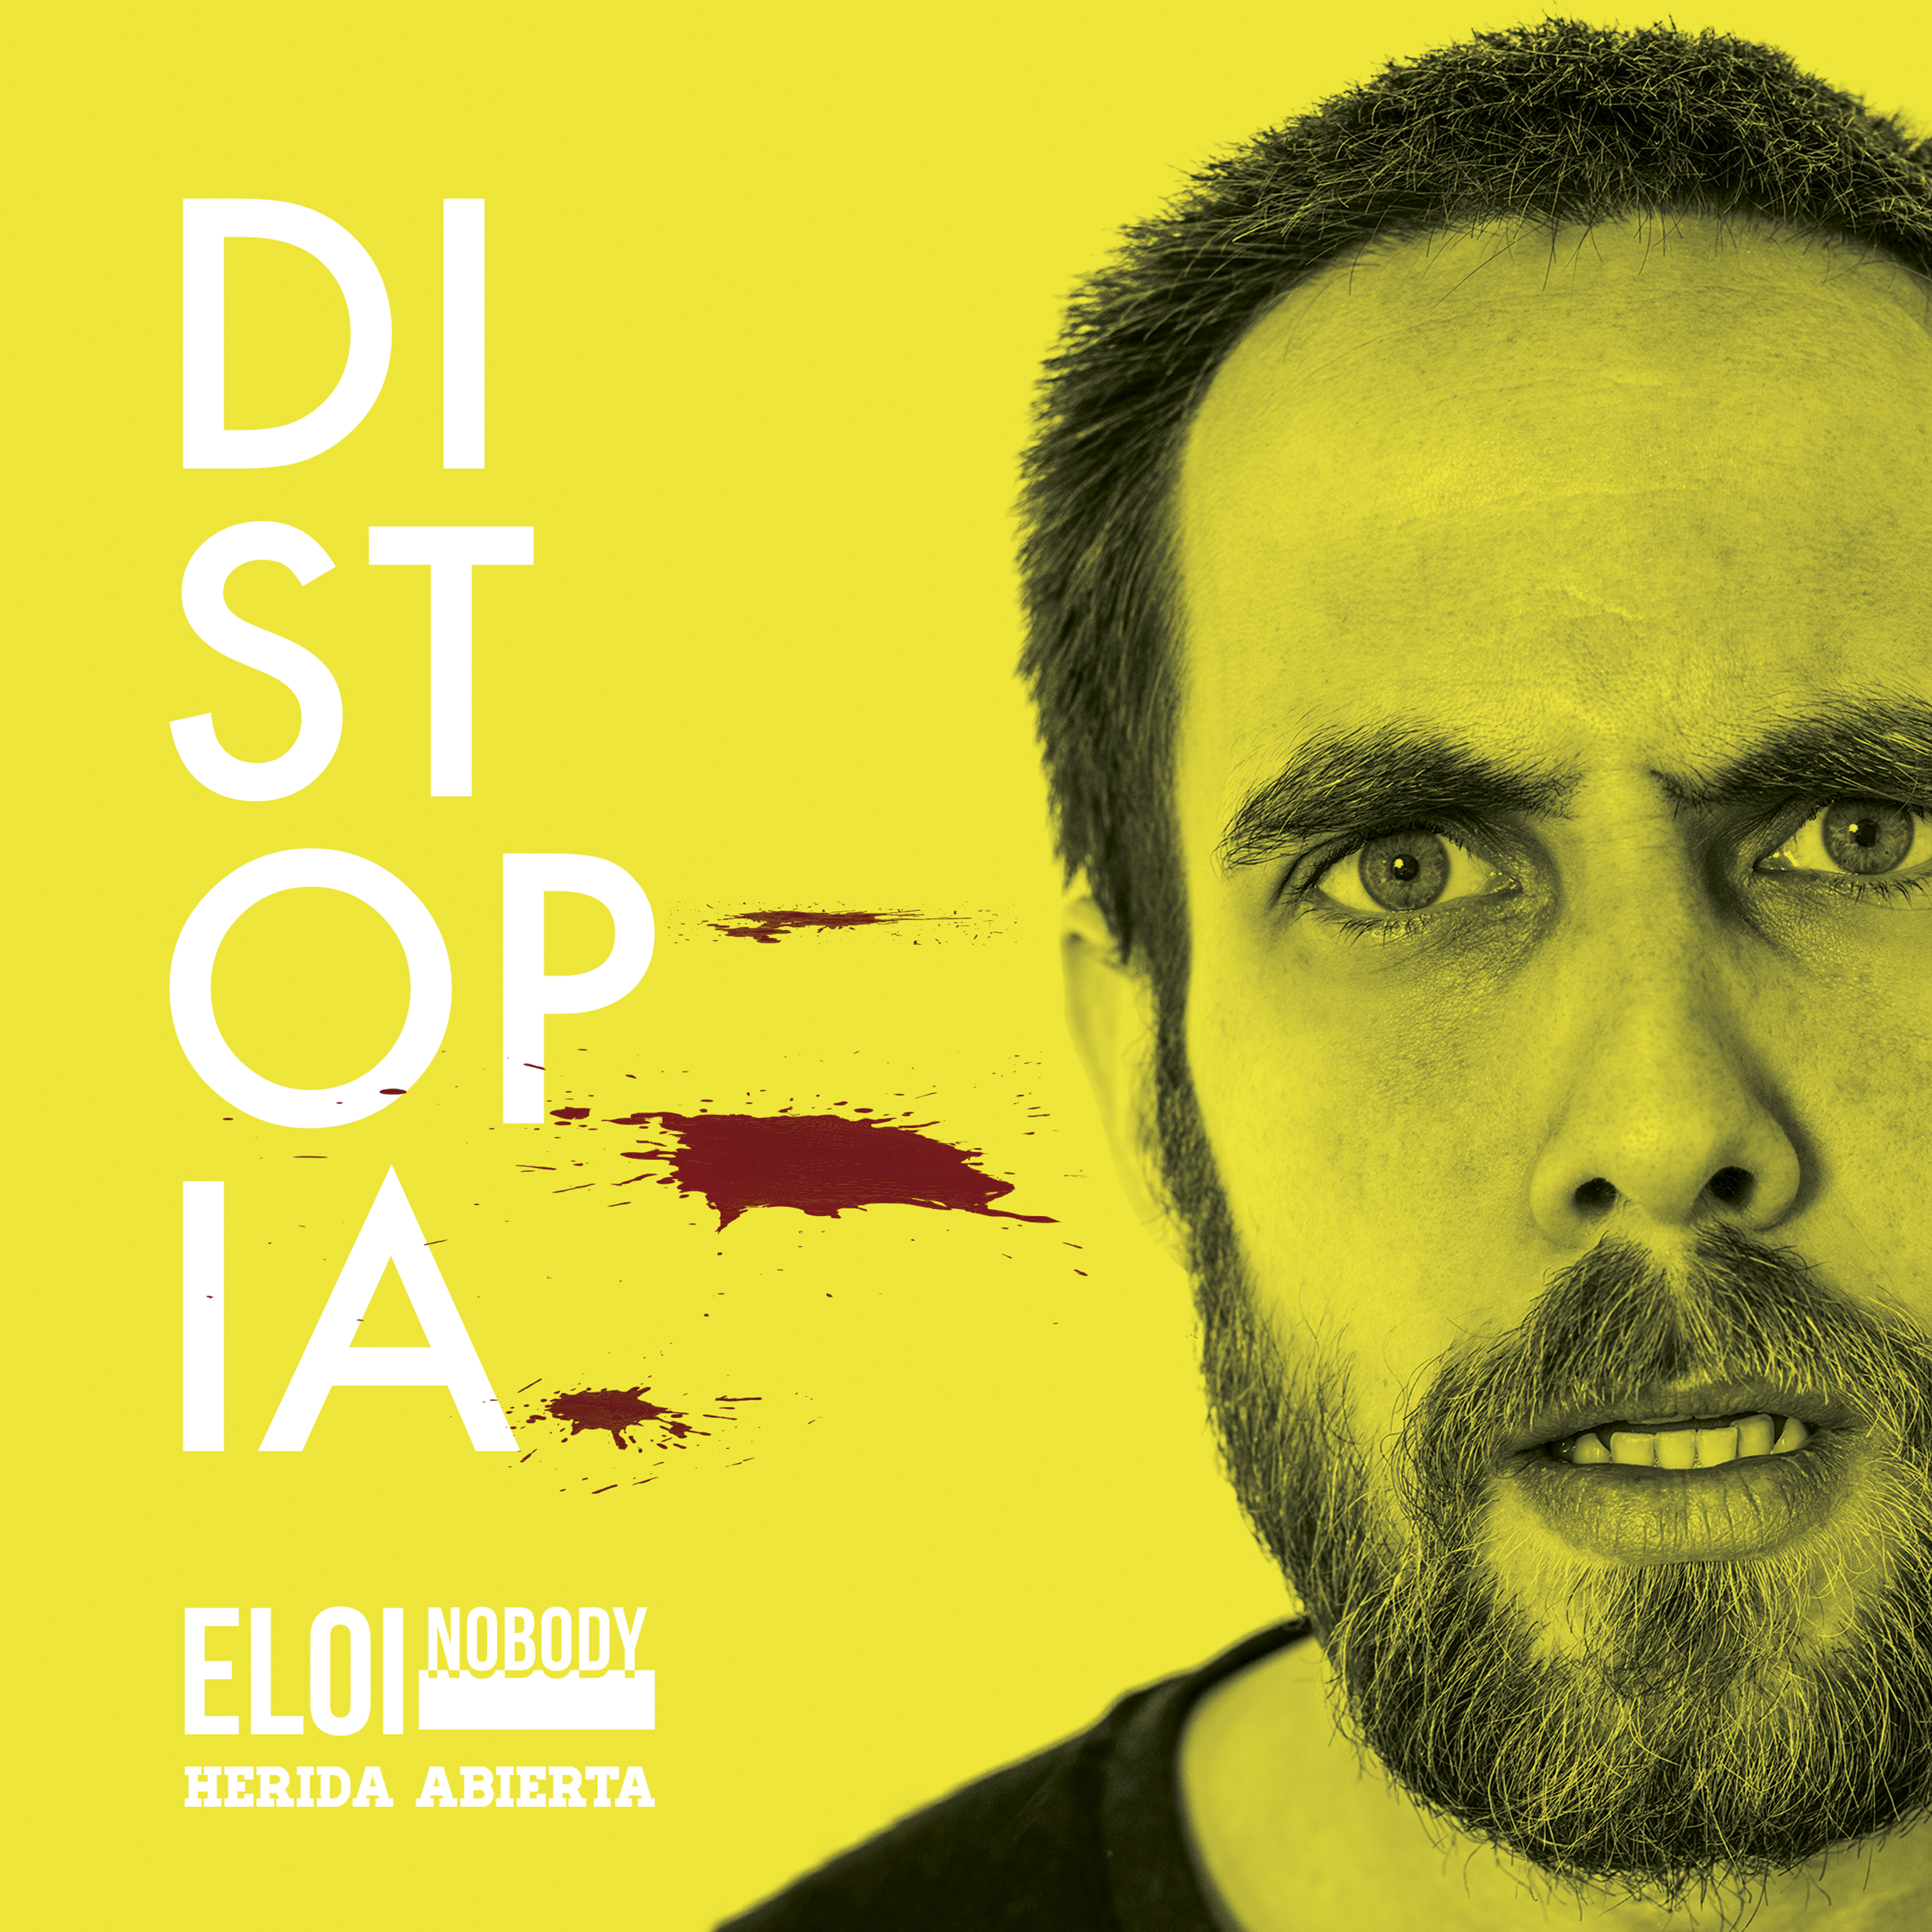 Eloi_nobody_-_distopia